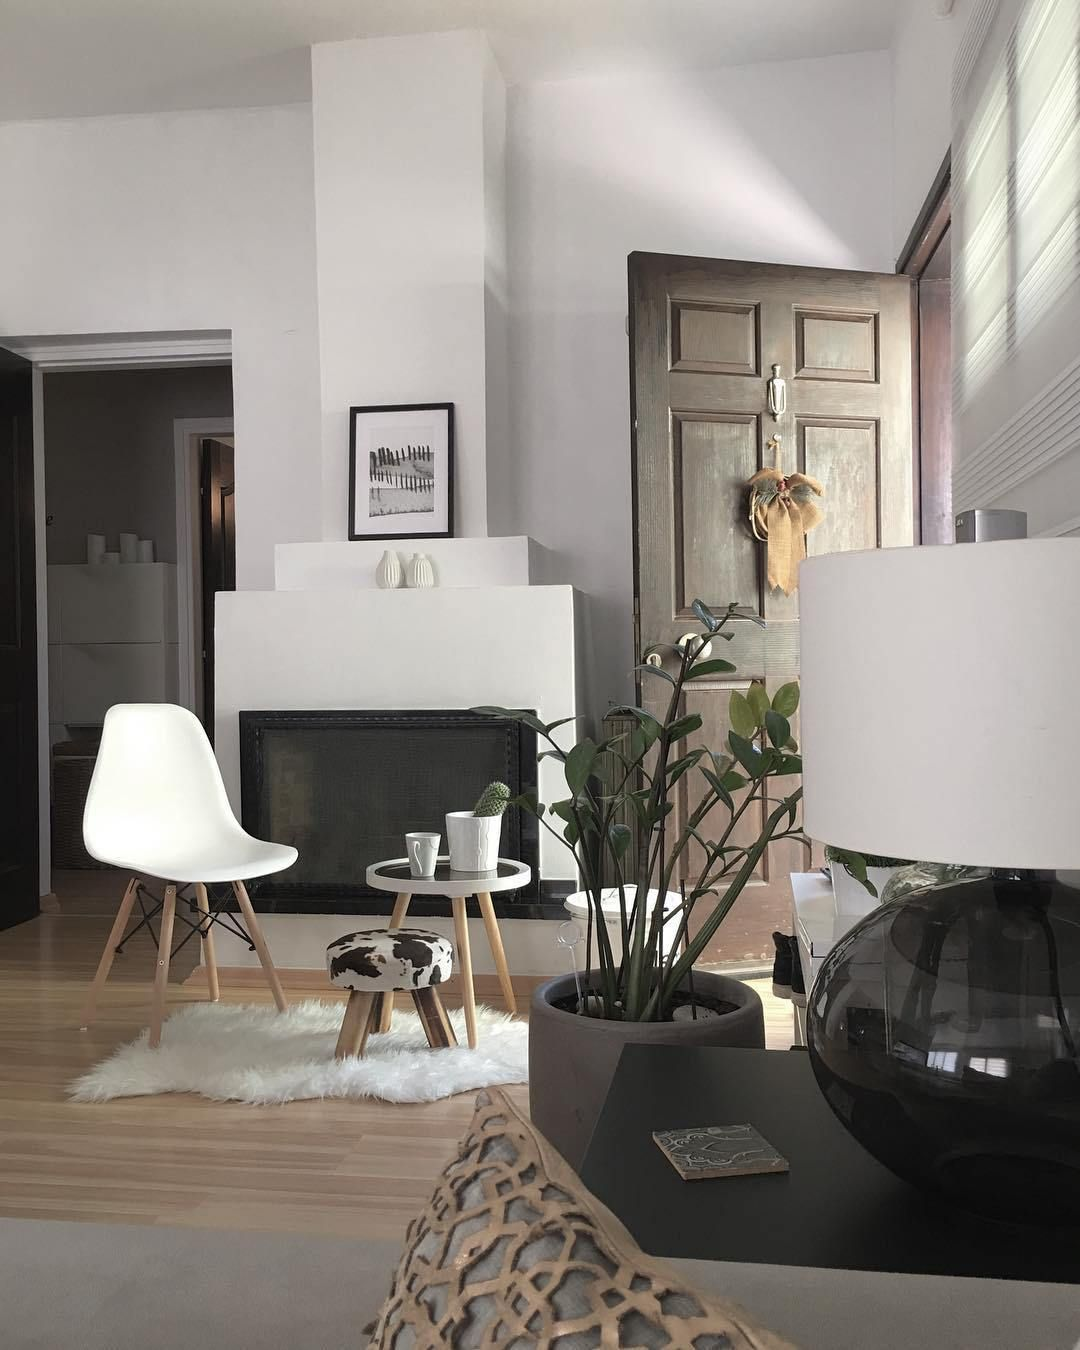 Scandinavian Kitchens Find Your Style Here: Home And Interior Inspiration On